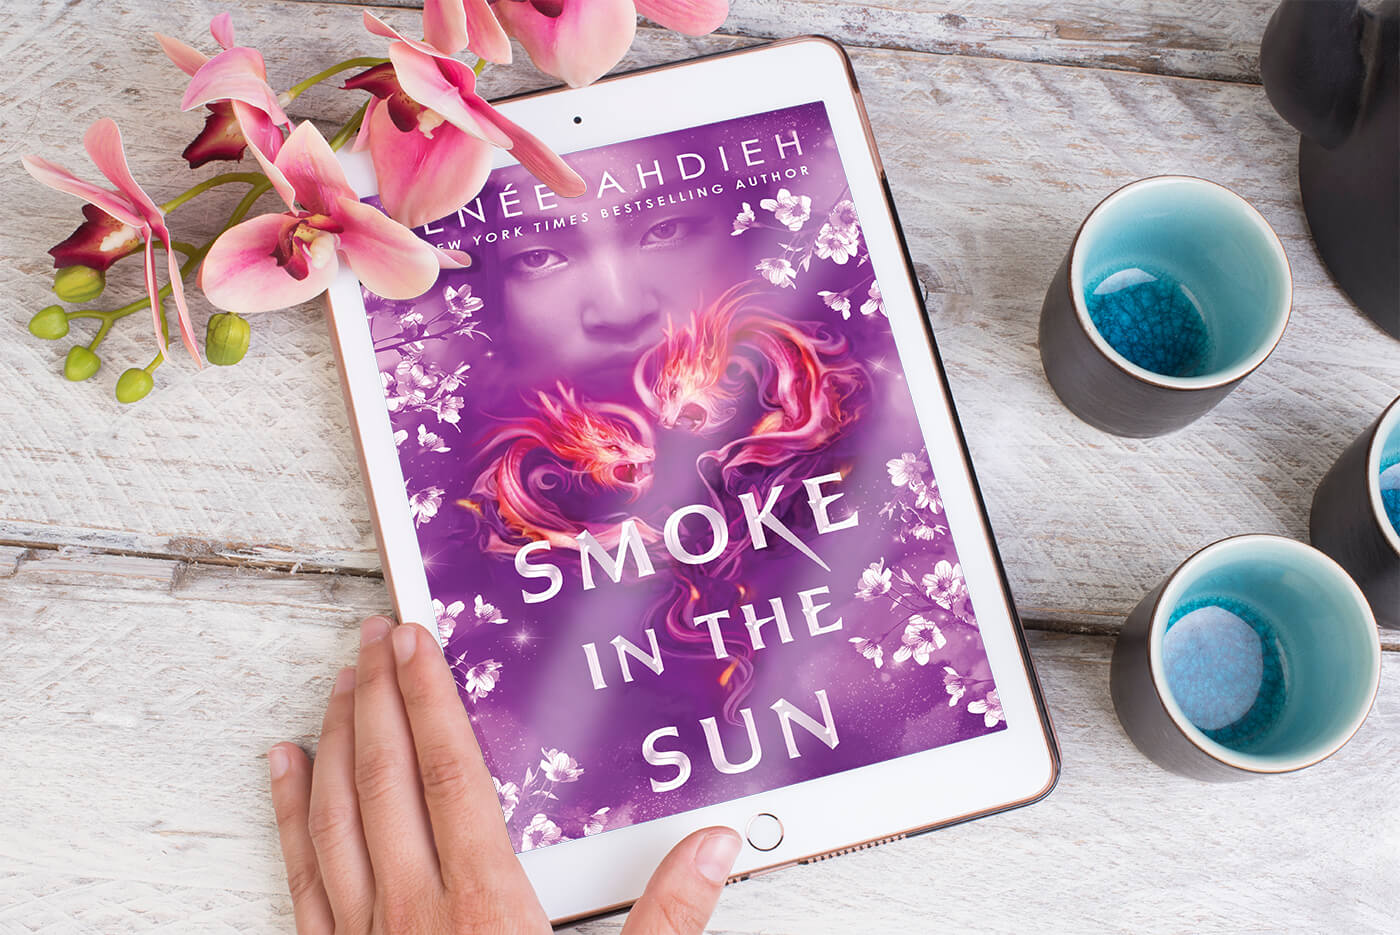 Smoke in the Sun by Renée Ahdieh book cover on an ipad